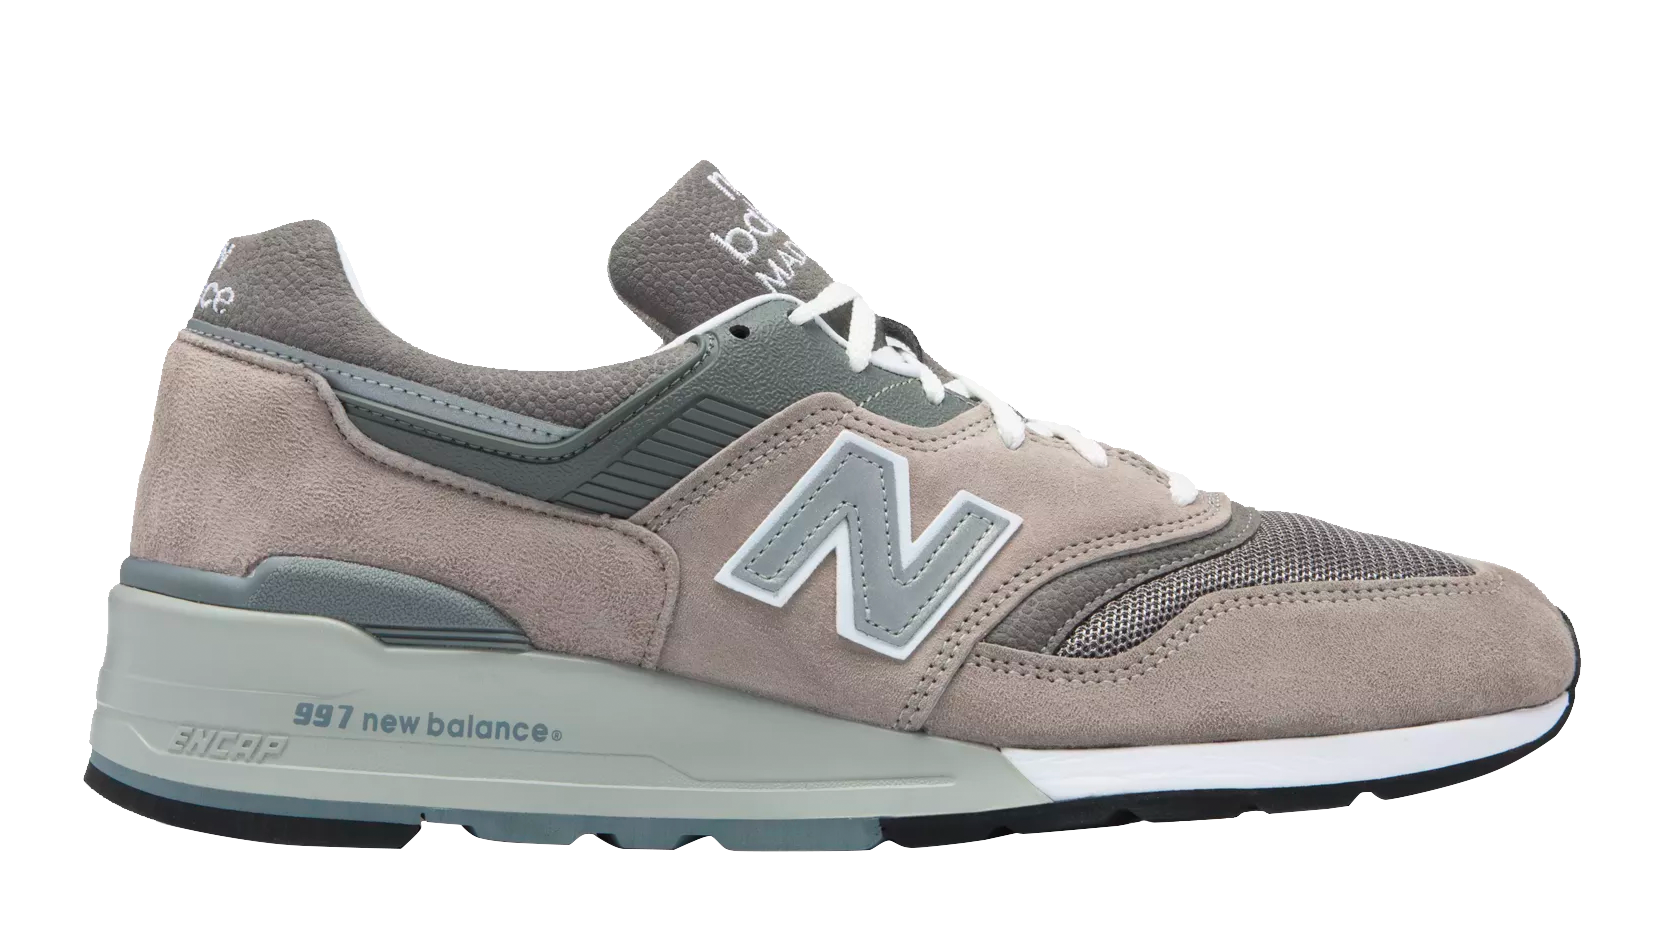 sneakers new balance 997